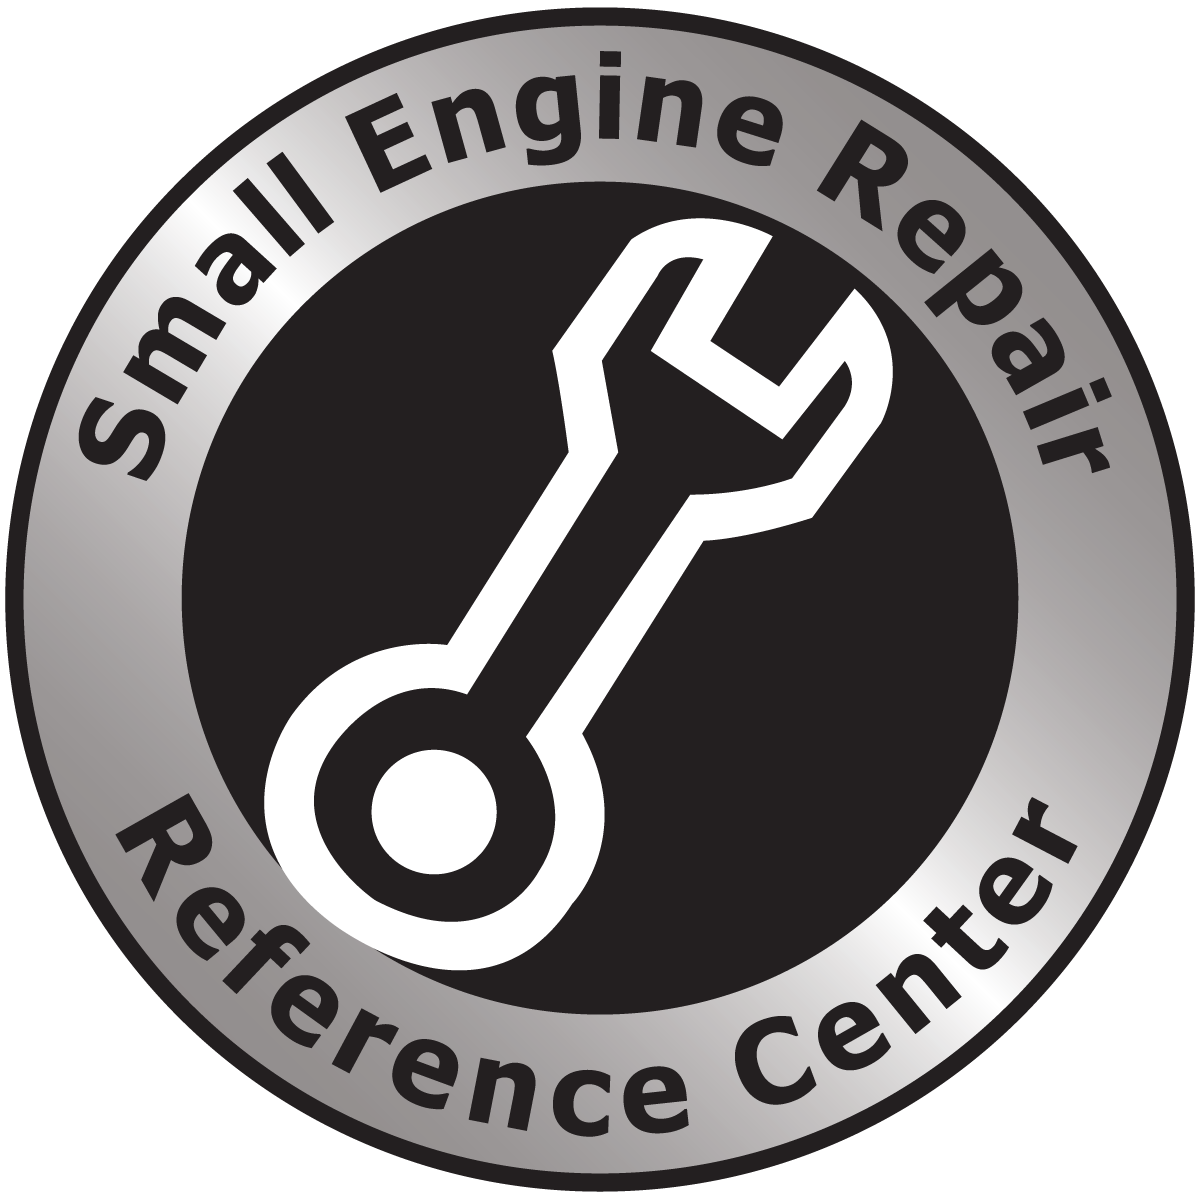 Training on Small Engine Repair Reference Center | Virtual Library Notes